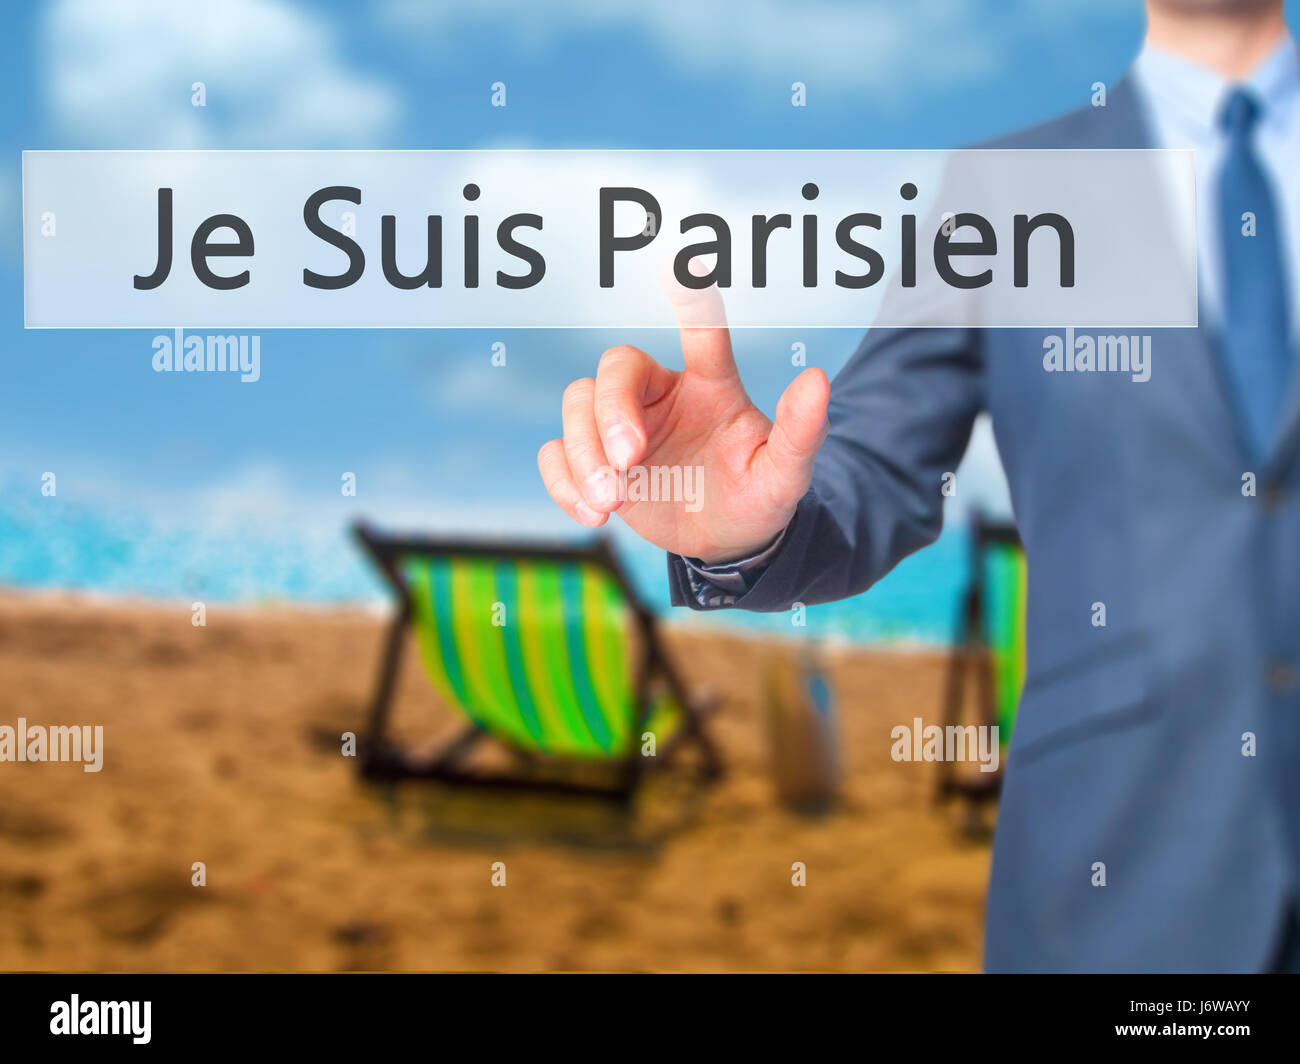 Je Suis Parisien ( I am Parisien)  - Businessman hand pressing button on touch screen interface. Business, technology, Stock Photo